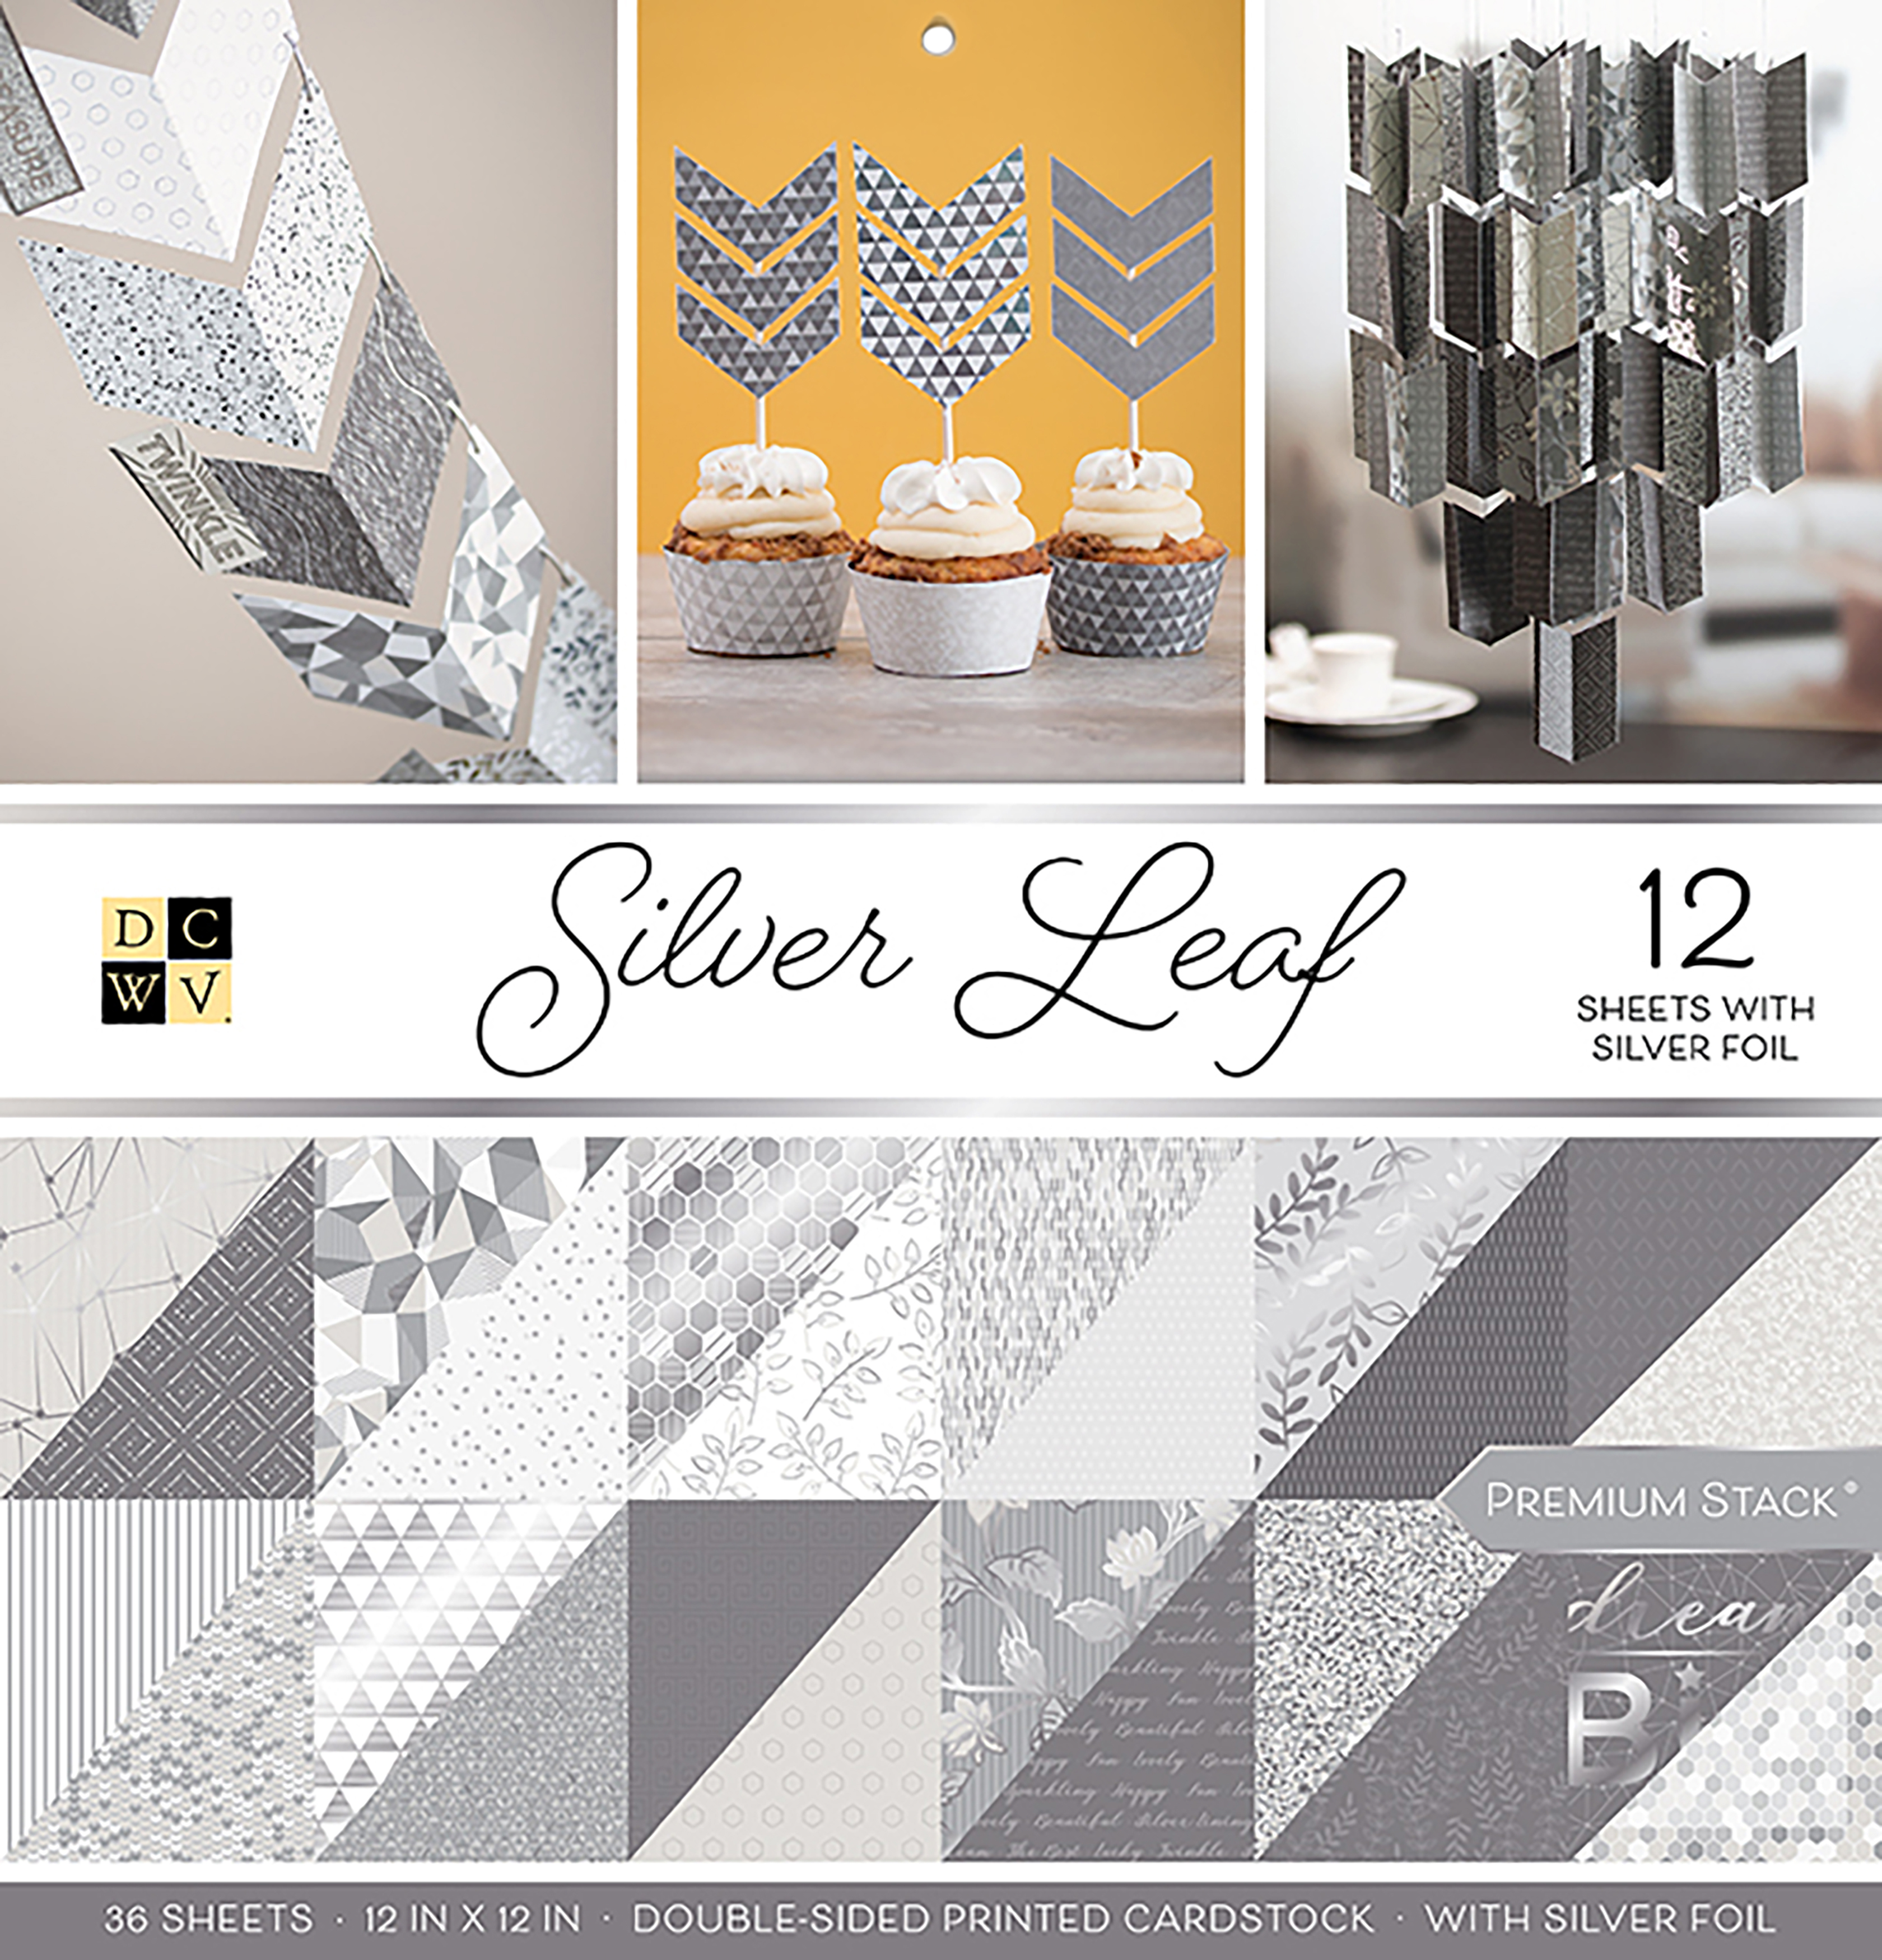 DCWV Double-Sided Cardstock Stack 12X12 36/Pkg-Silver Leaf, 18 Designs/2 Each